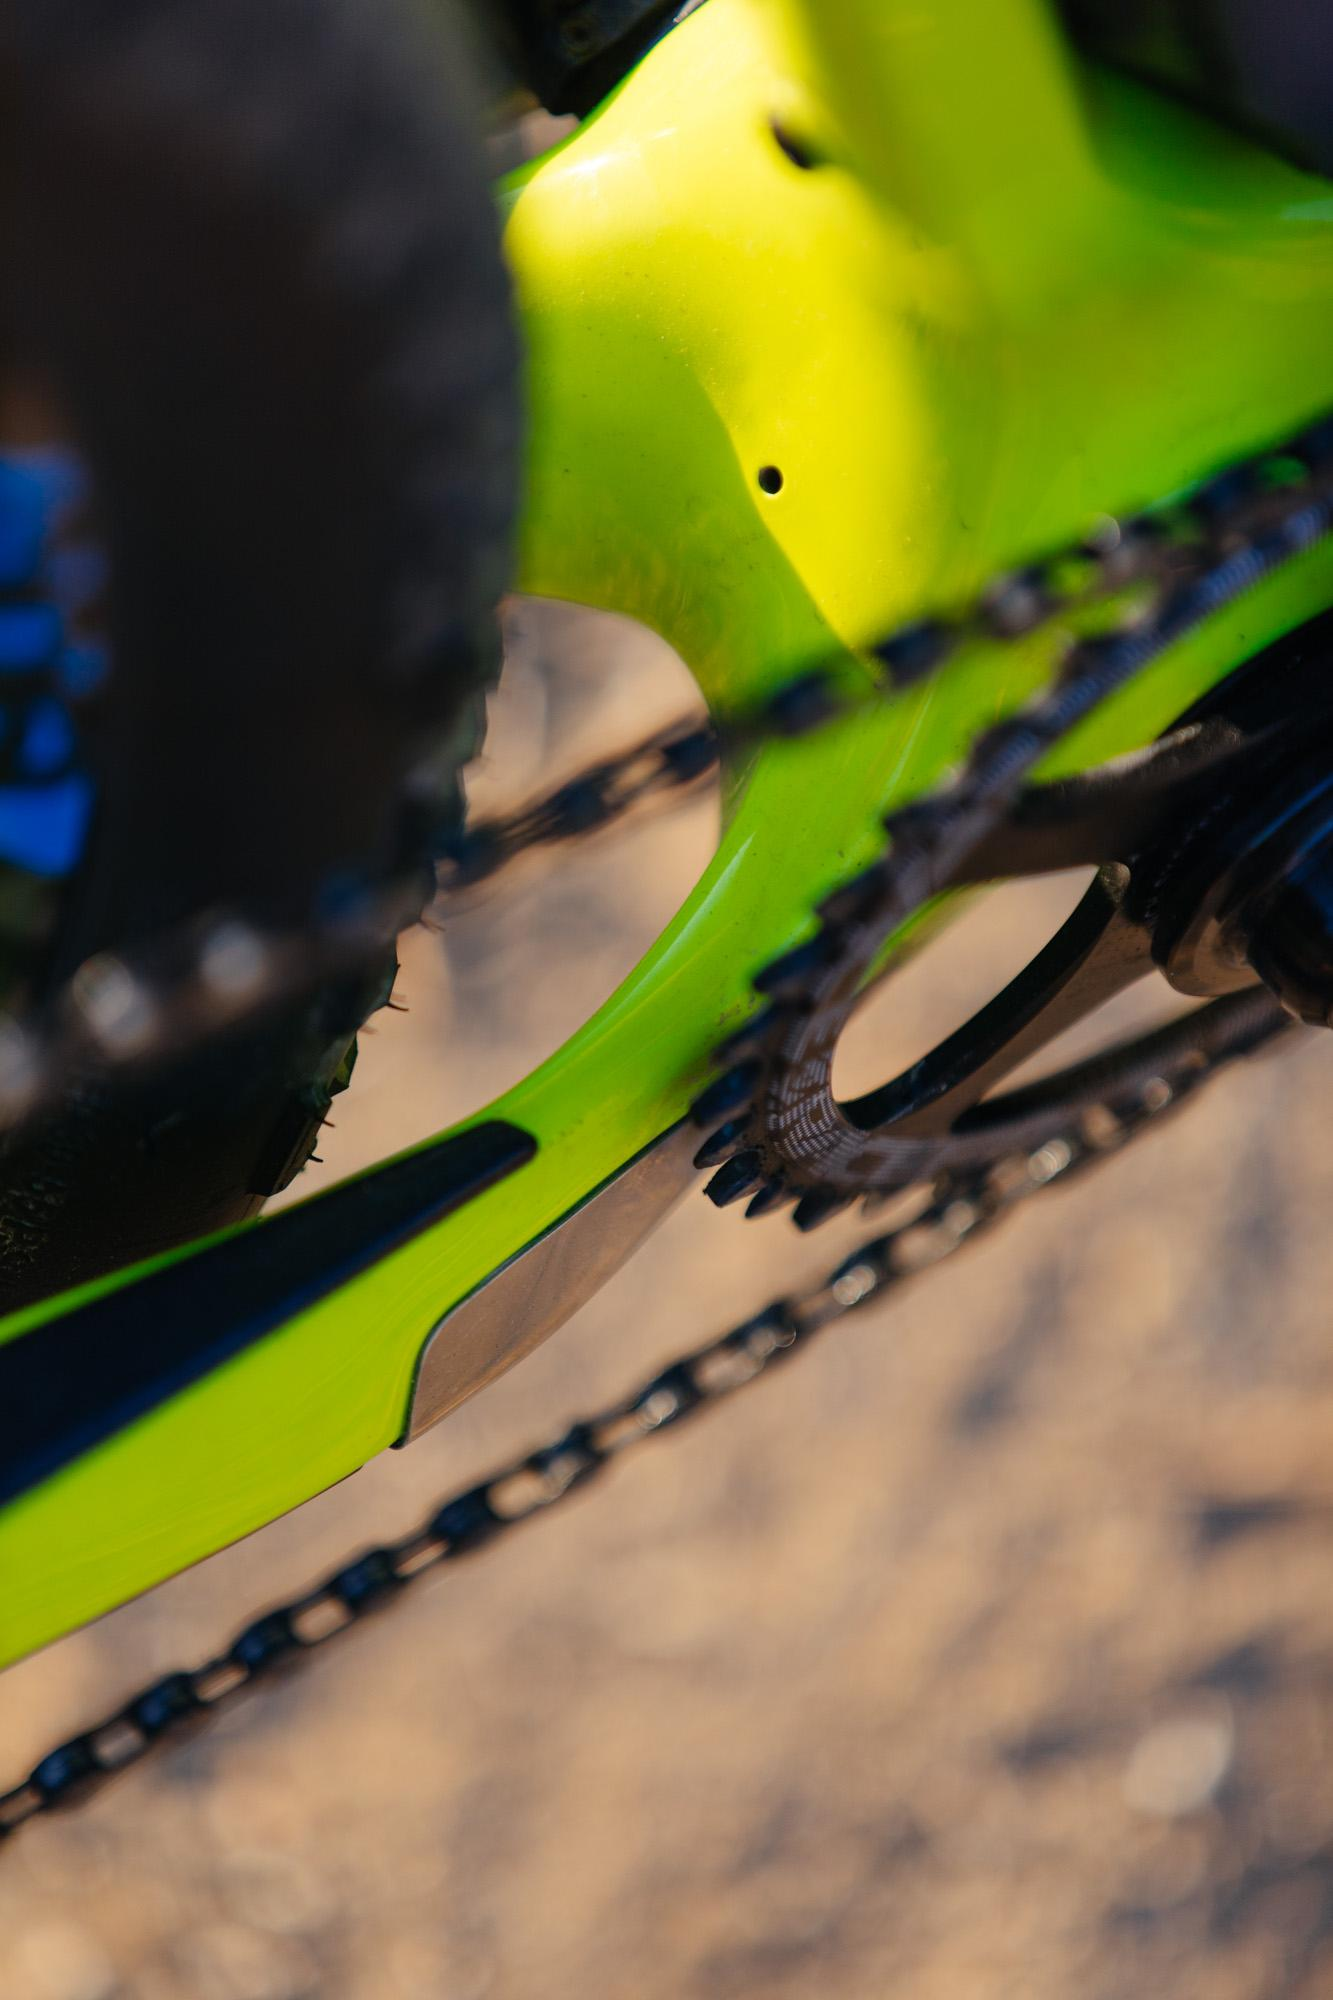 The 2020 Salsa Cutthroat with Shimano GRX